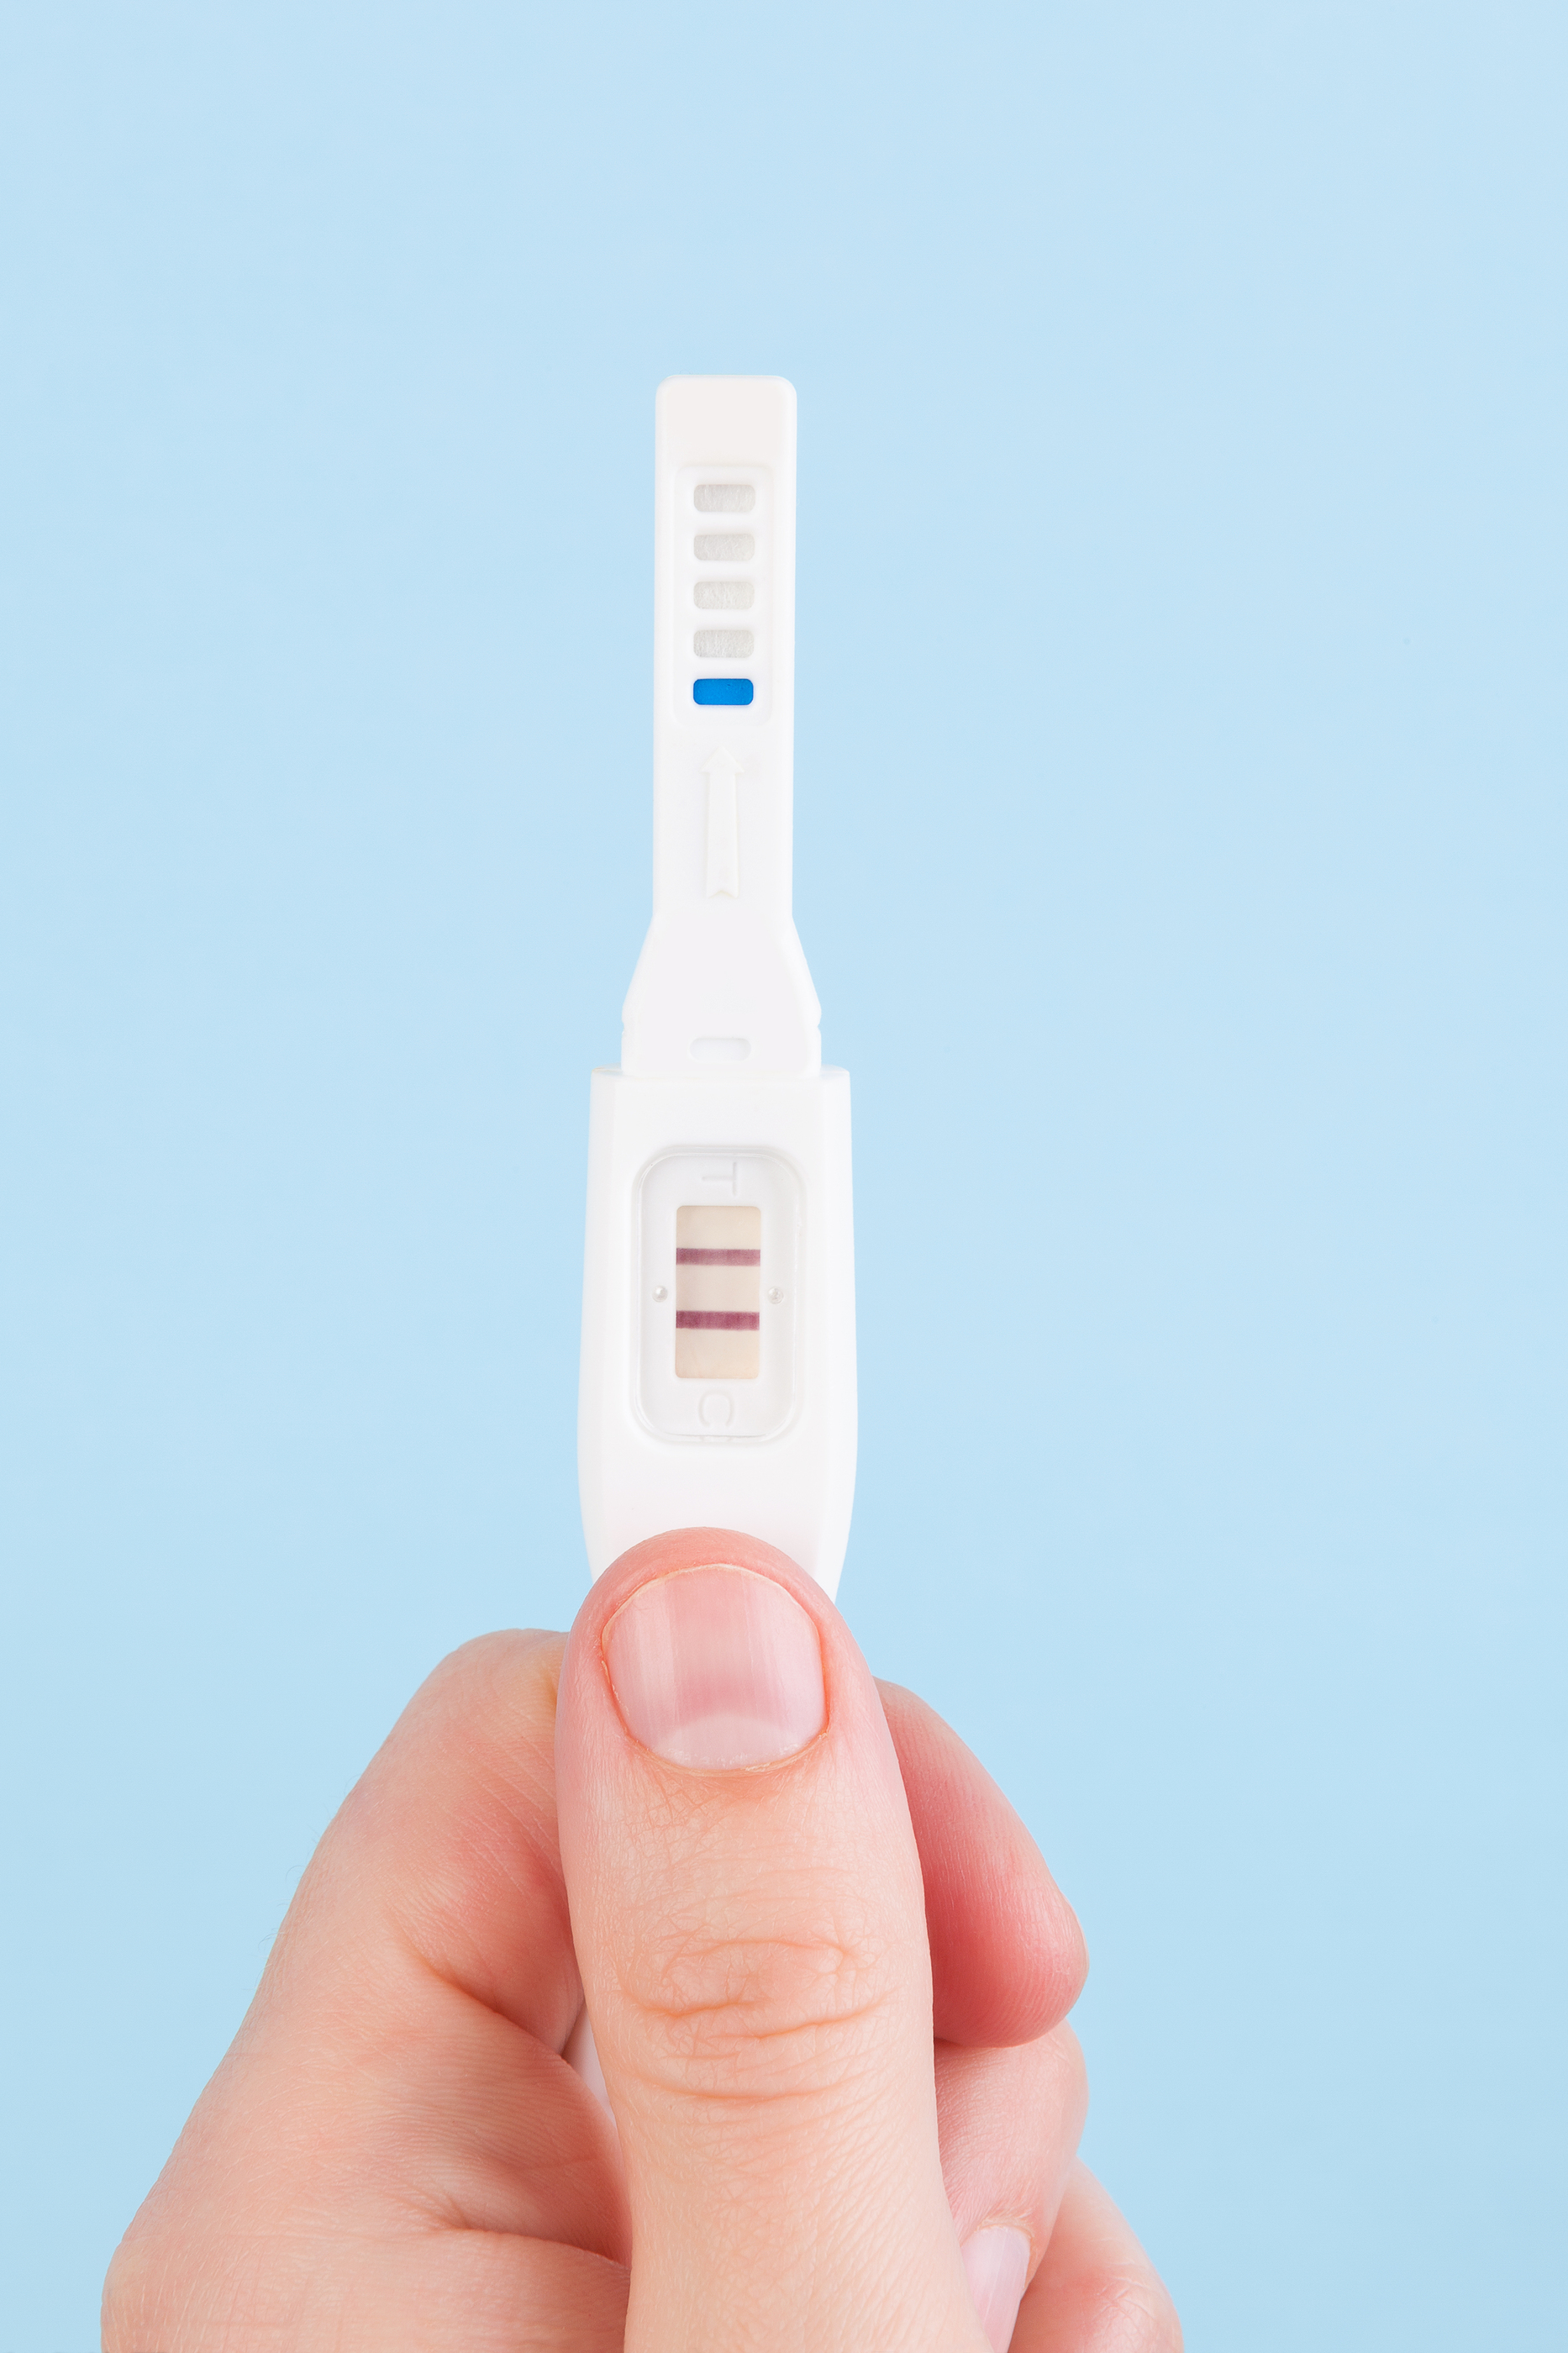 Can A Man Test Positive On A Pregnancy Test